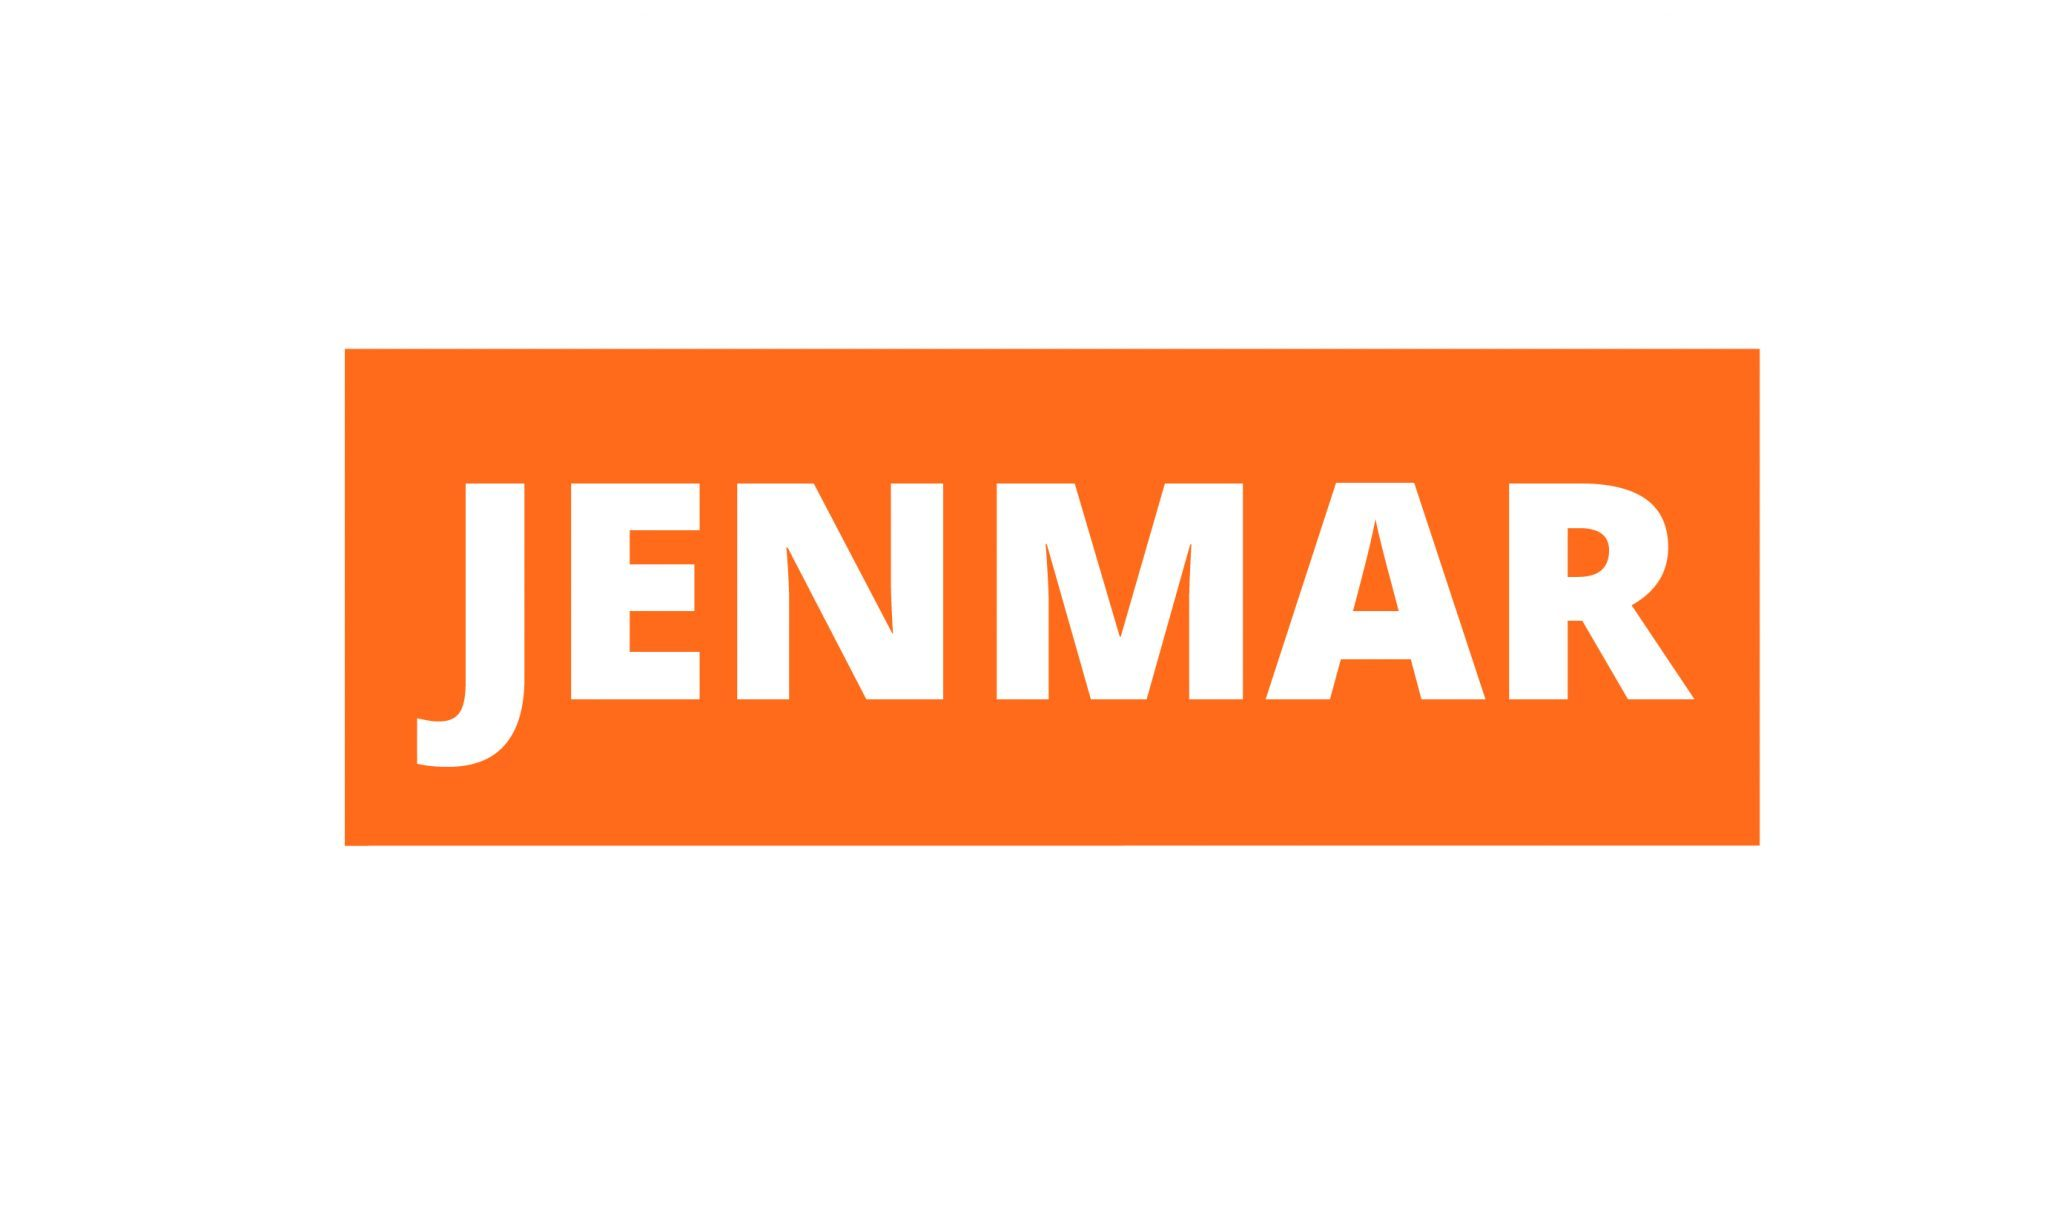 Jenmar Translation